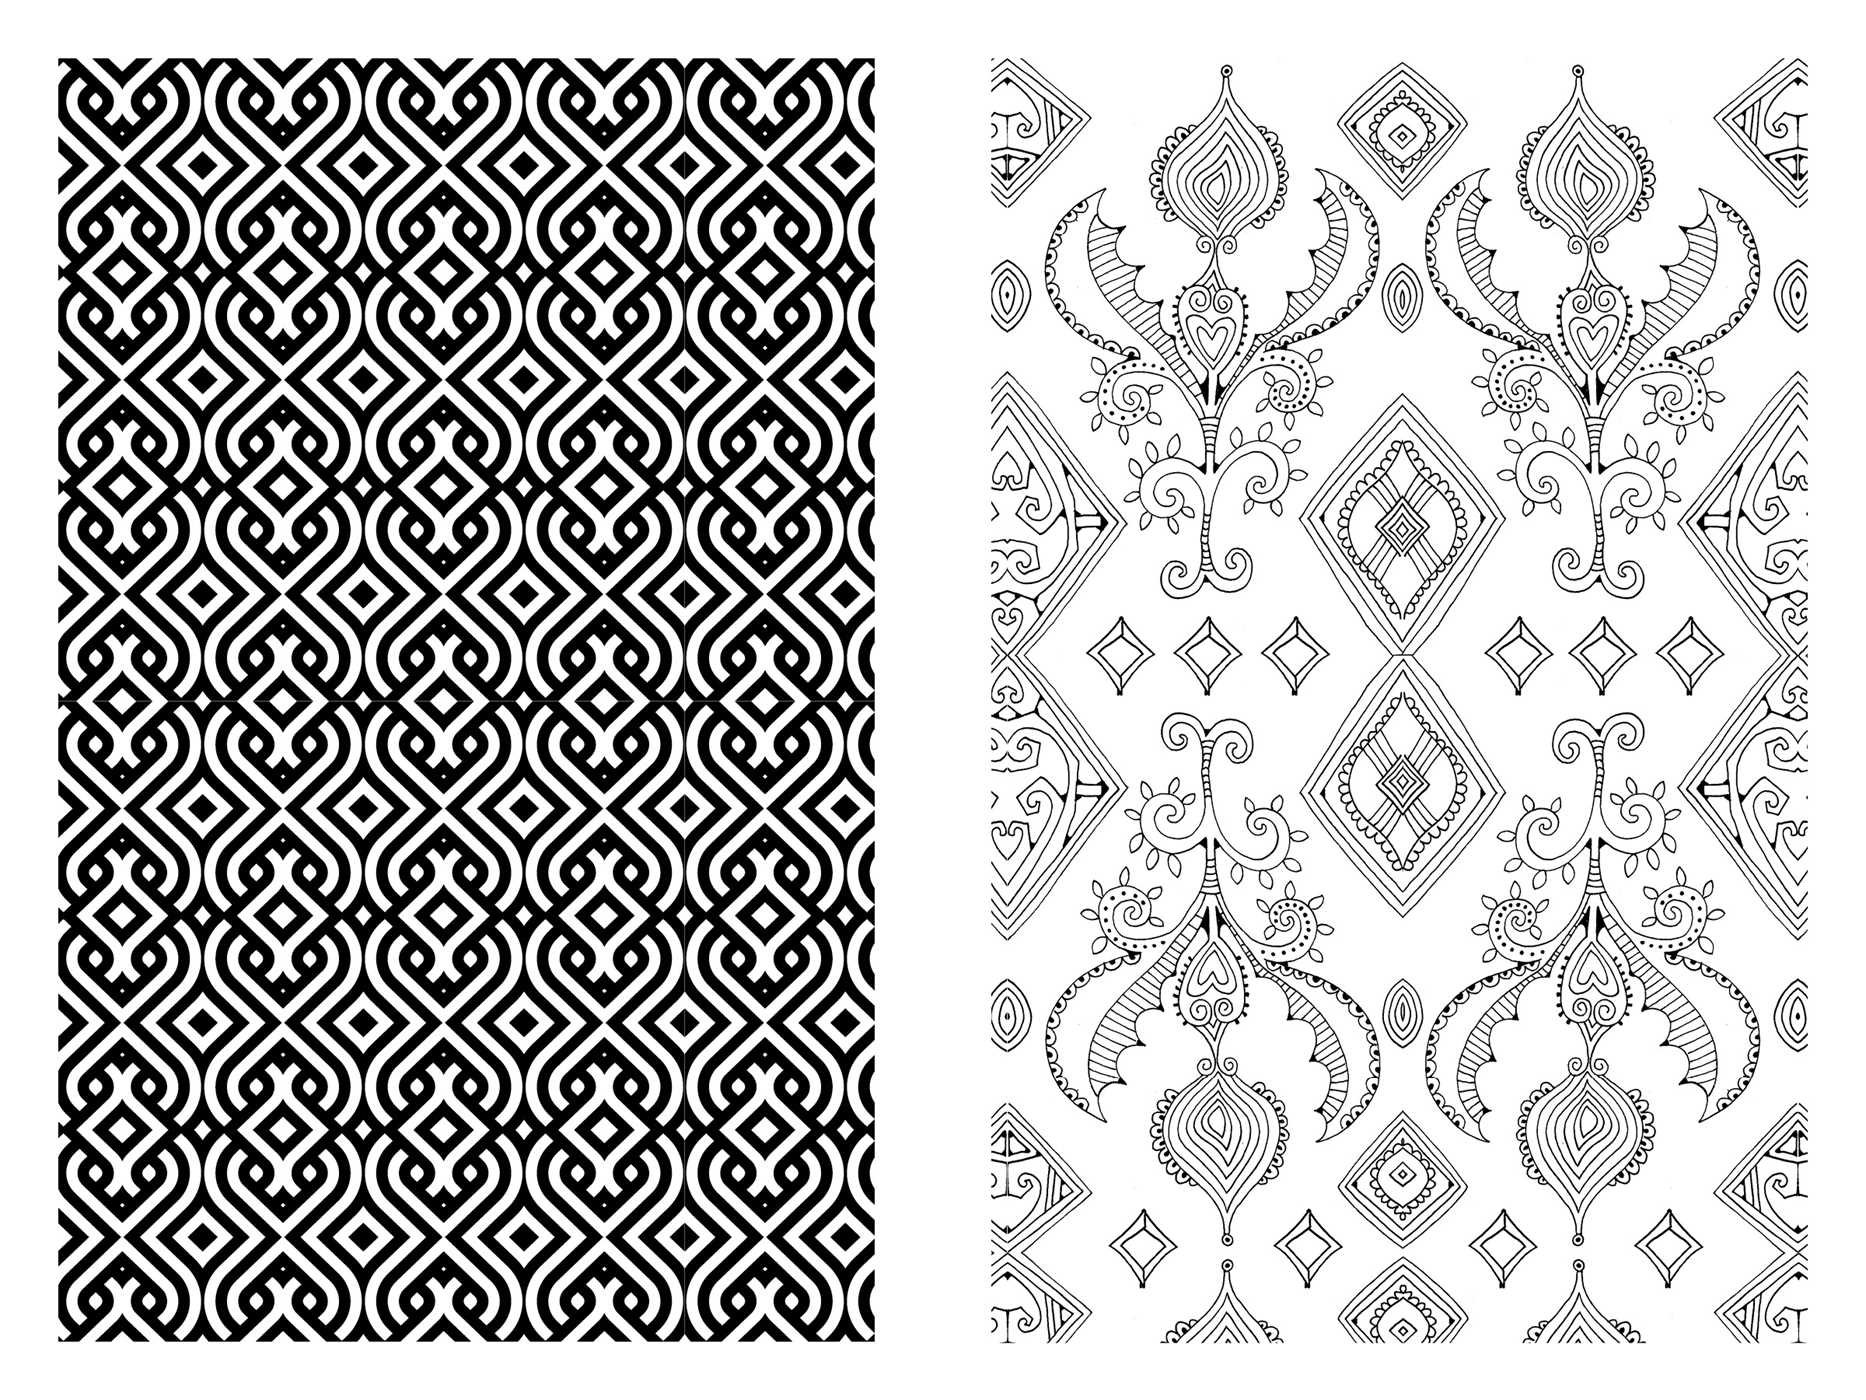 Buy Pocket Posh Adult Coloring Book Vintage Designs For Fun Relaxation Books Online At Low Prices In India